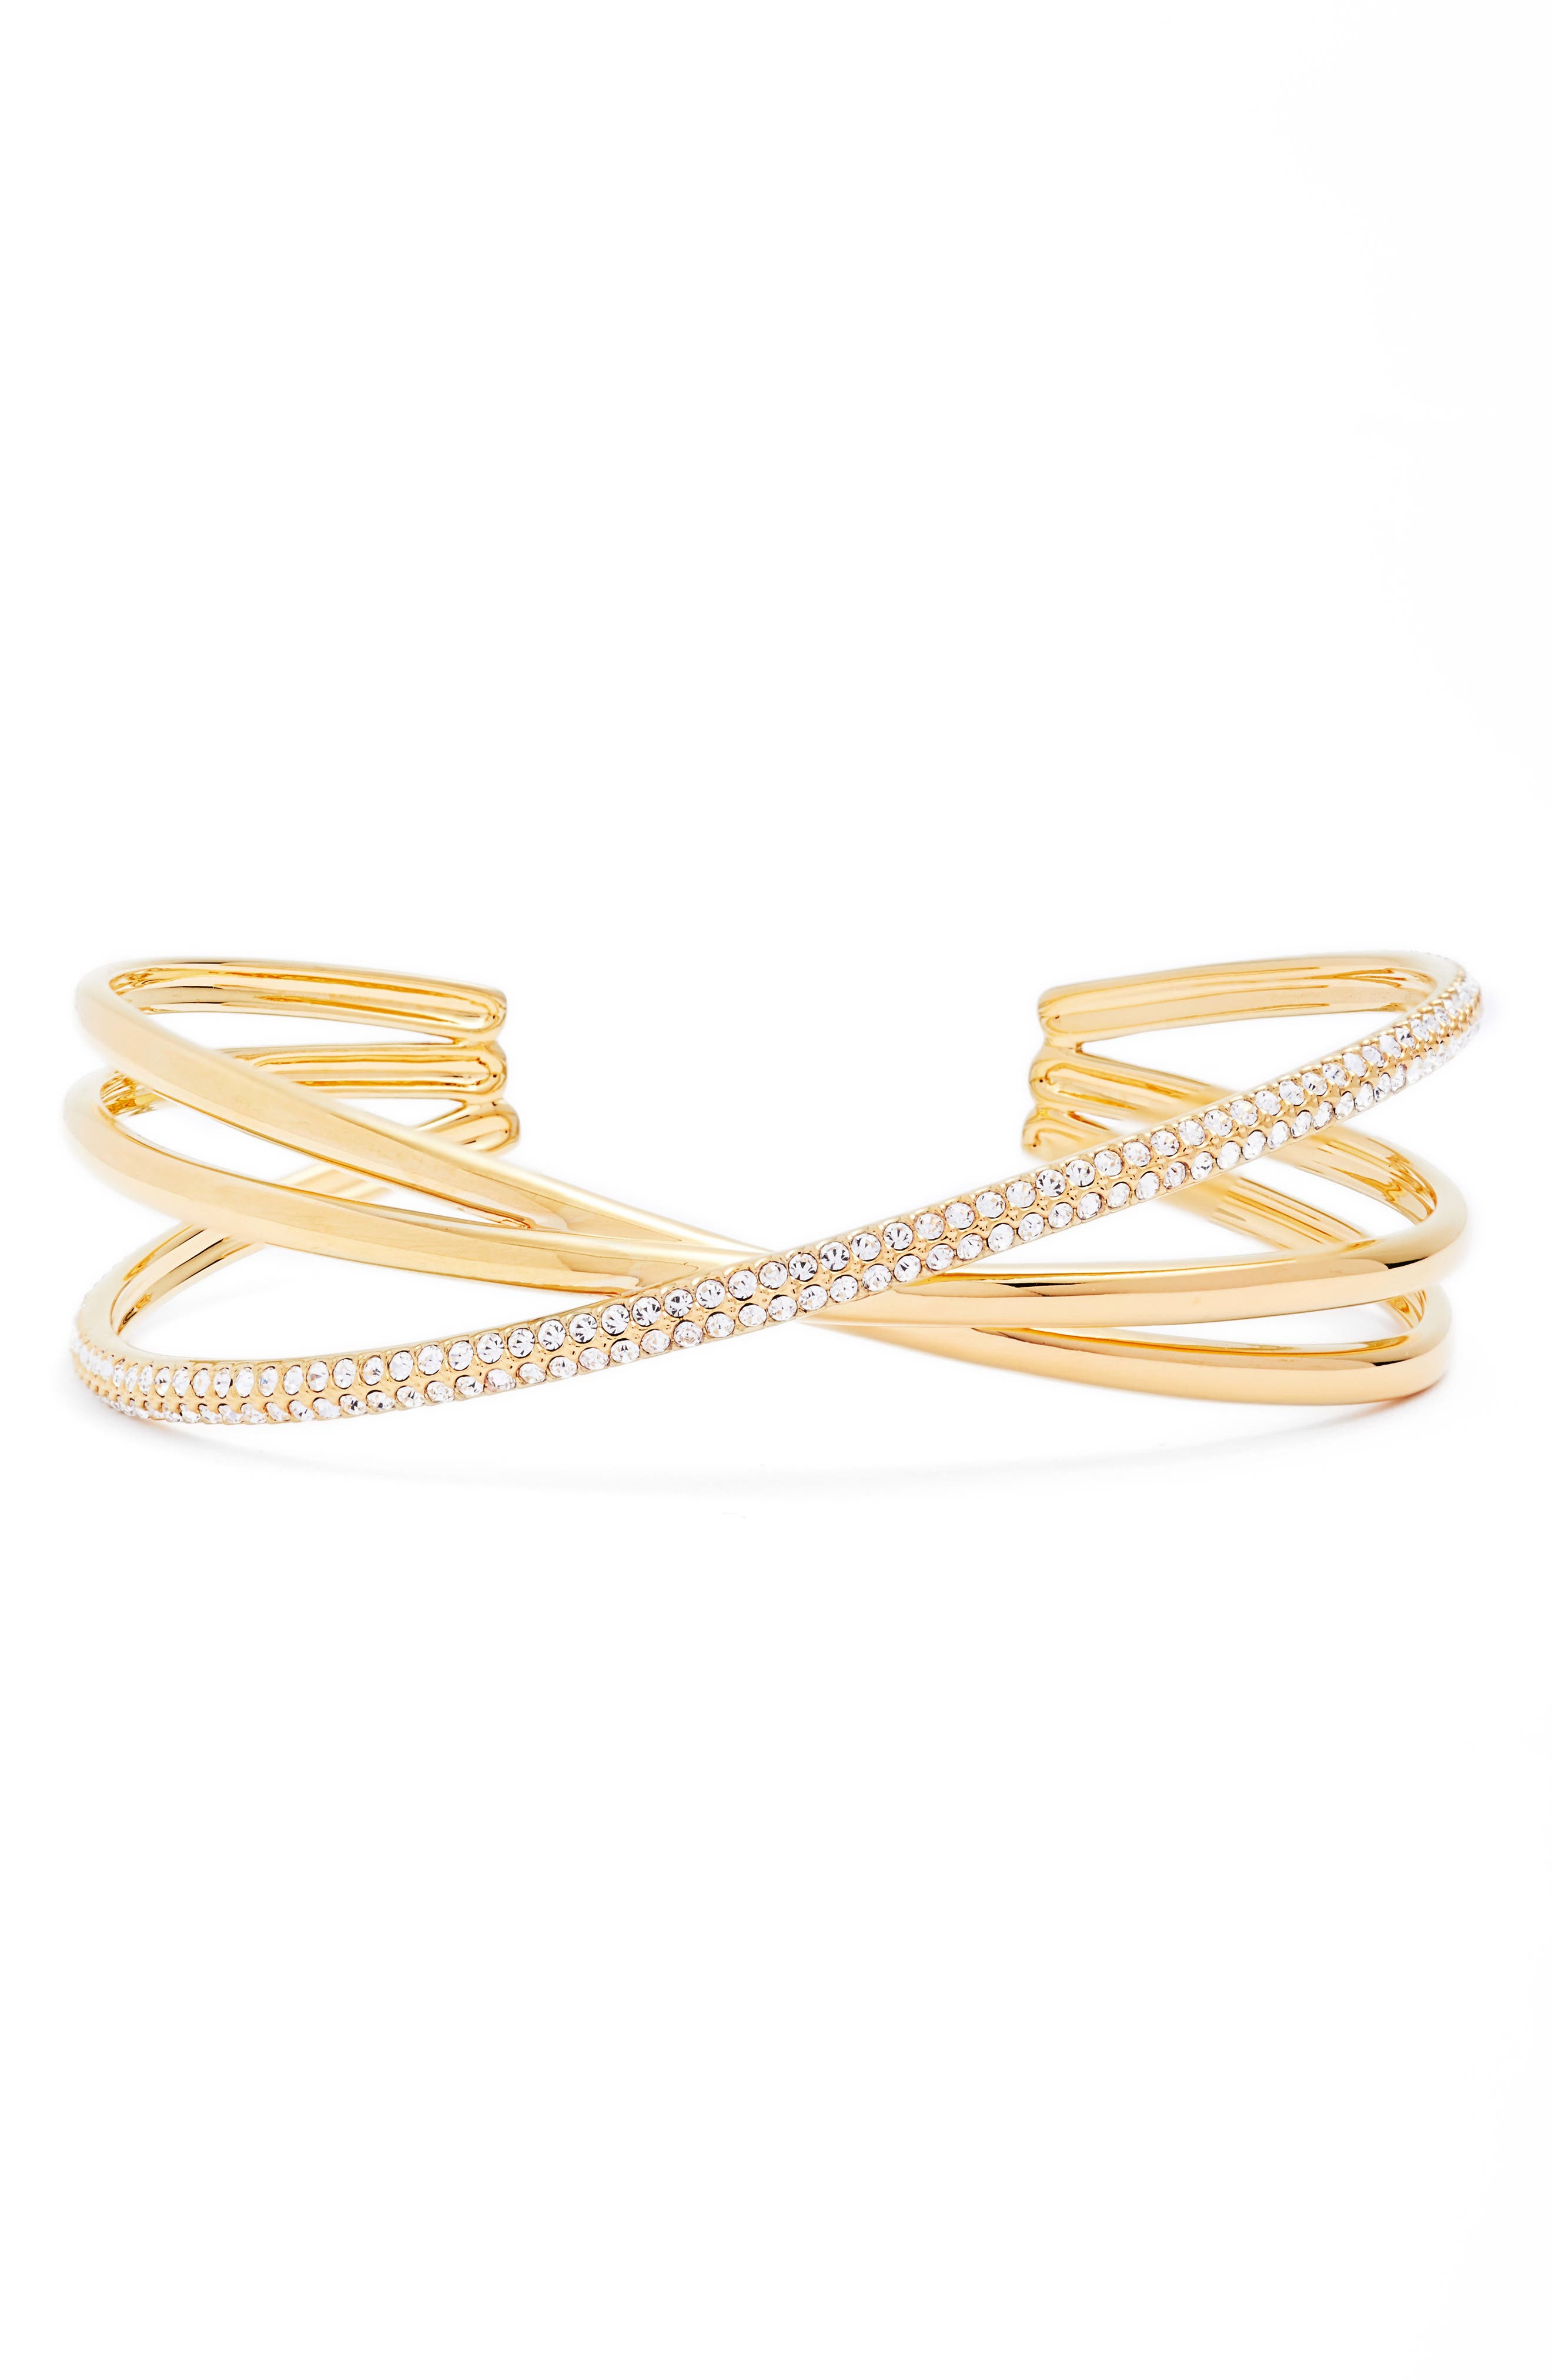 Trinity Pavé Crossover Cuff,                             Main thumbnail 1, color,                             Gold